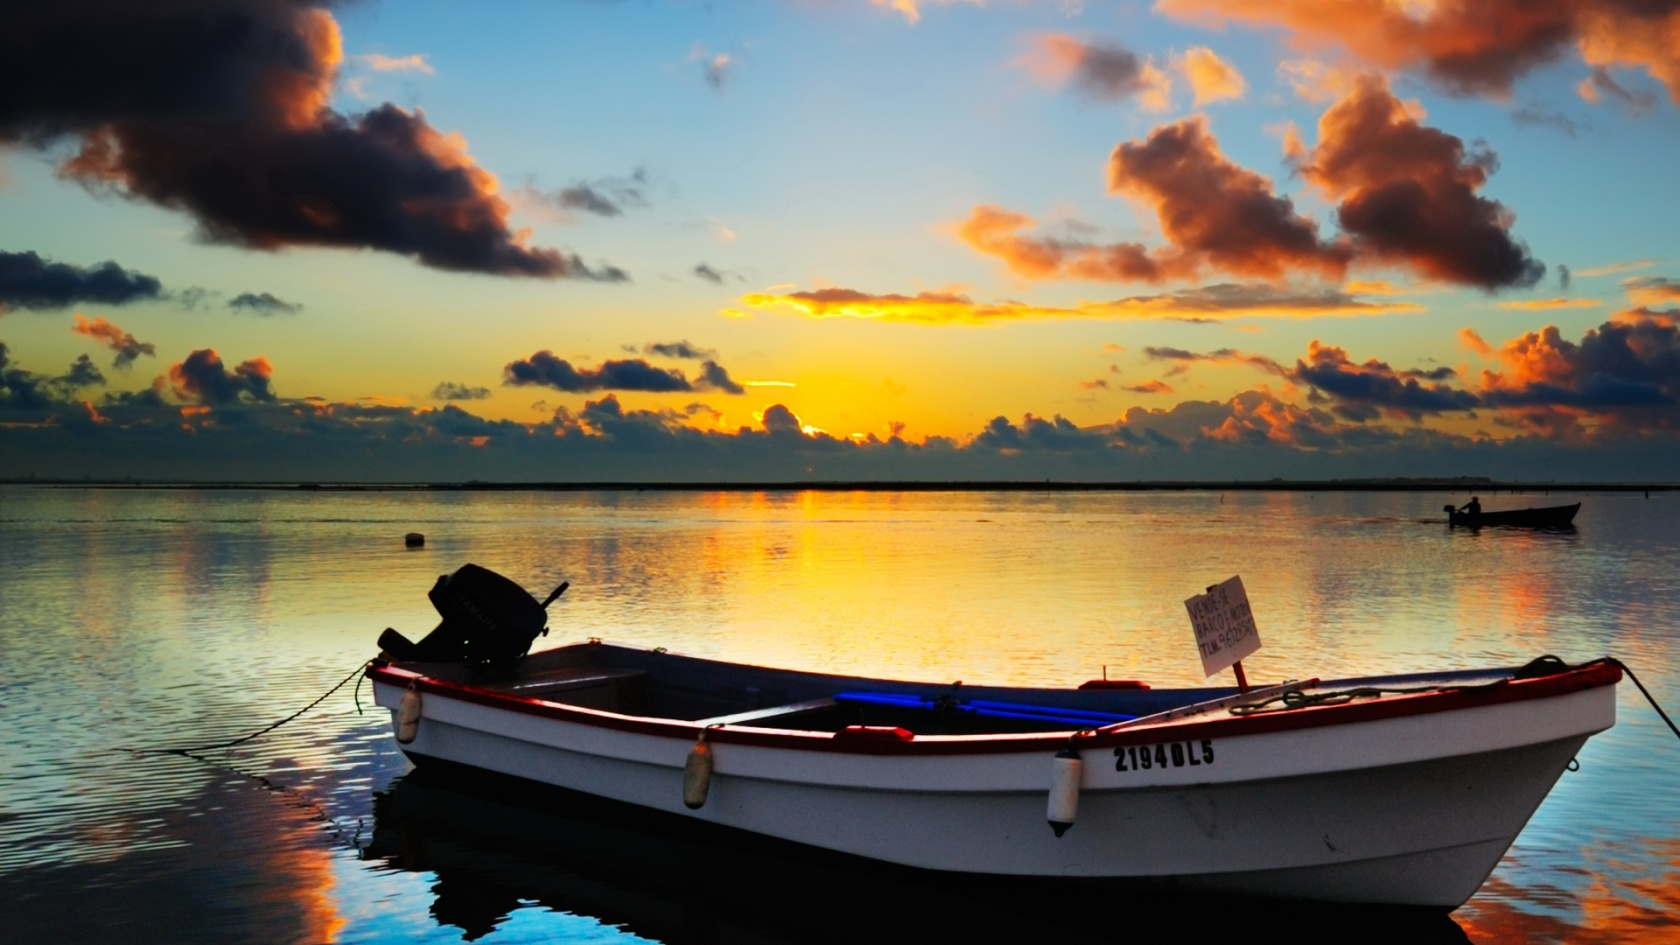 Sunset And Boat Wallpaper Desktop Wallpaper WallpaperLepi 1680x945